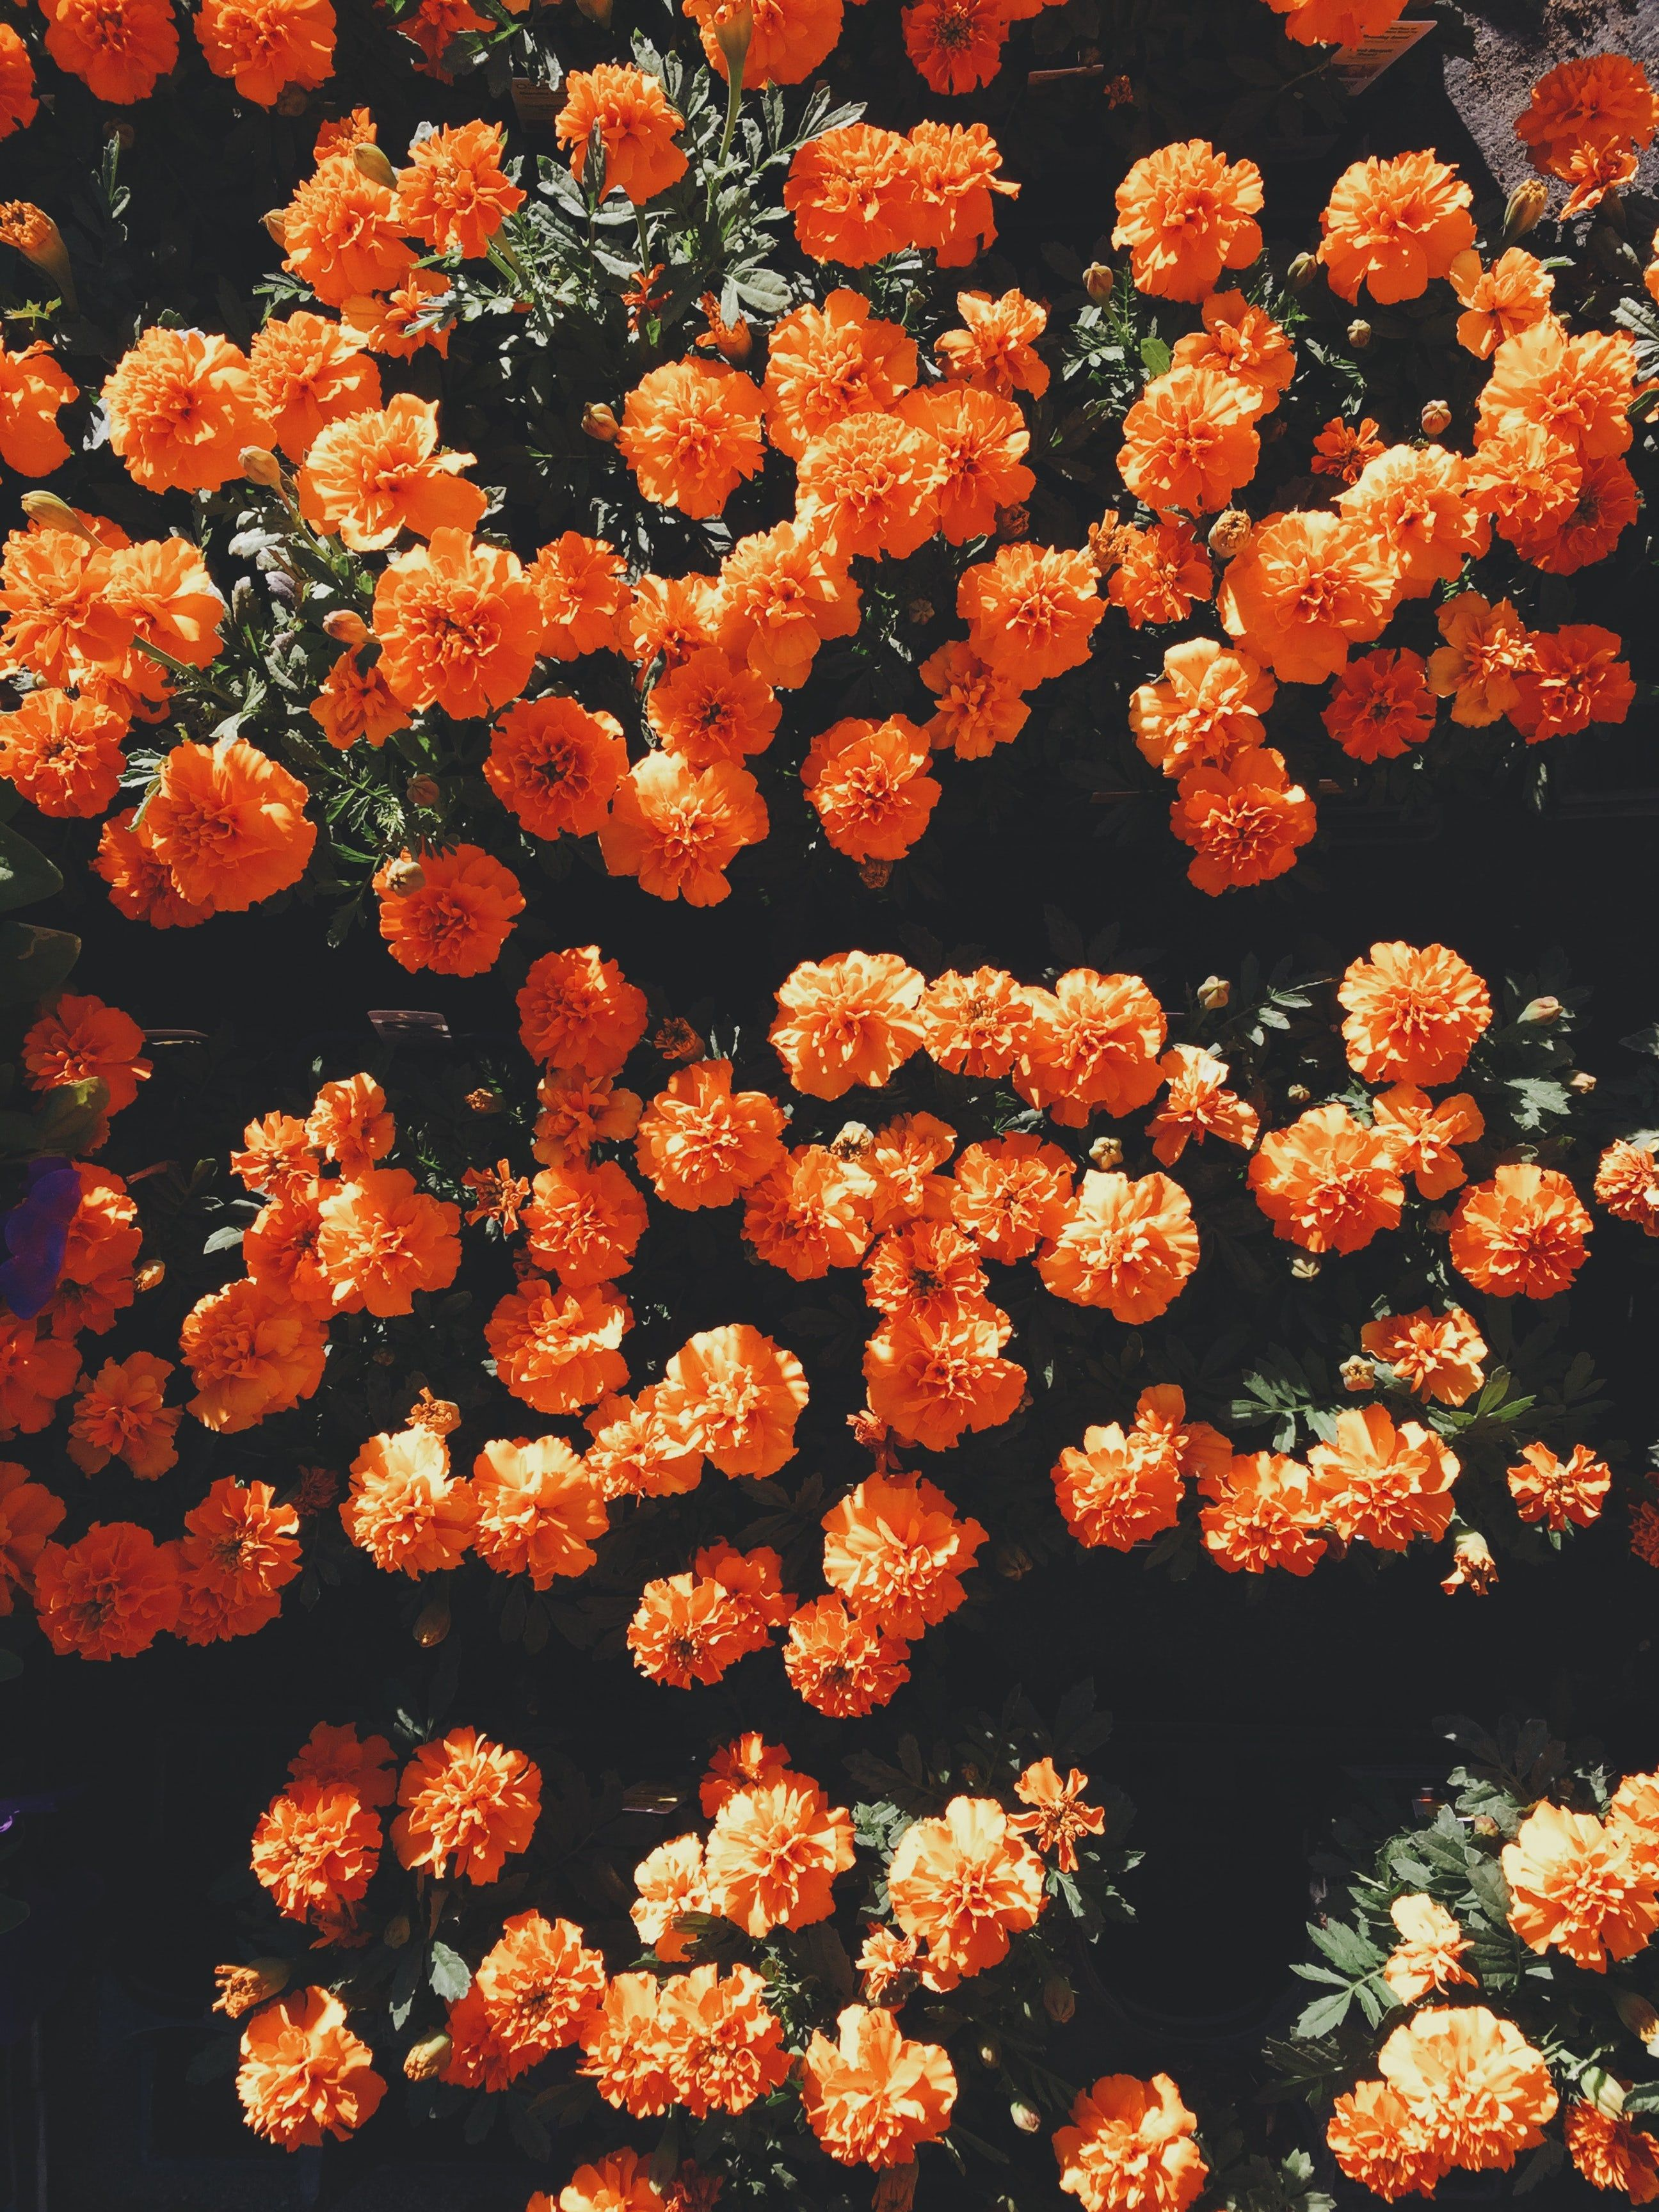 Aesthetic Floral HD Wallpapers - Wallpaper Cave